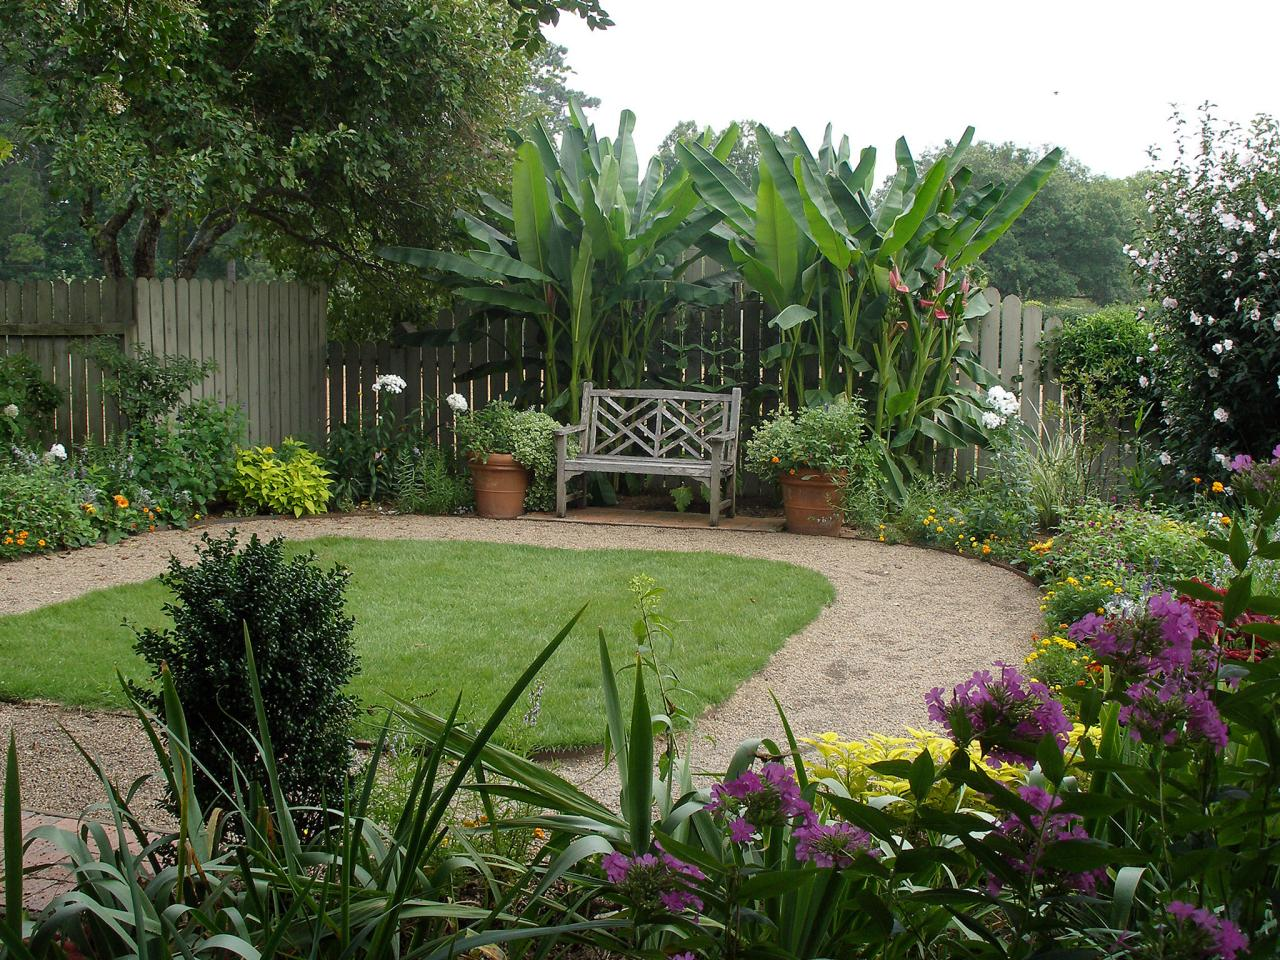 Basic landscaping tips for an empty yard hgtv for Landscape design guide